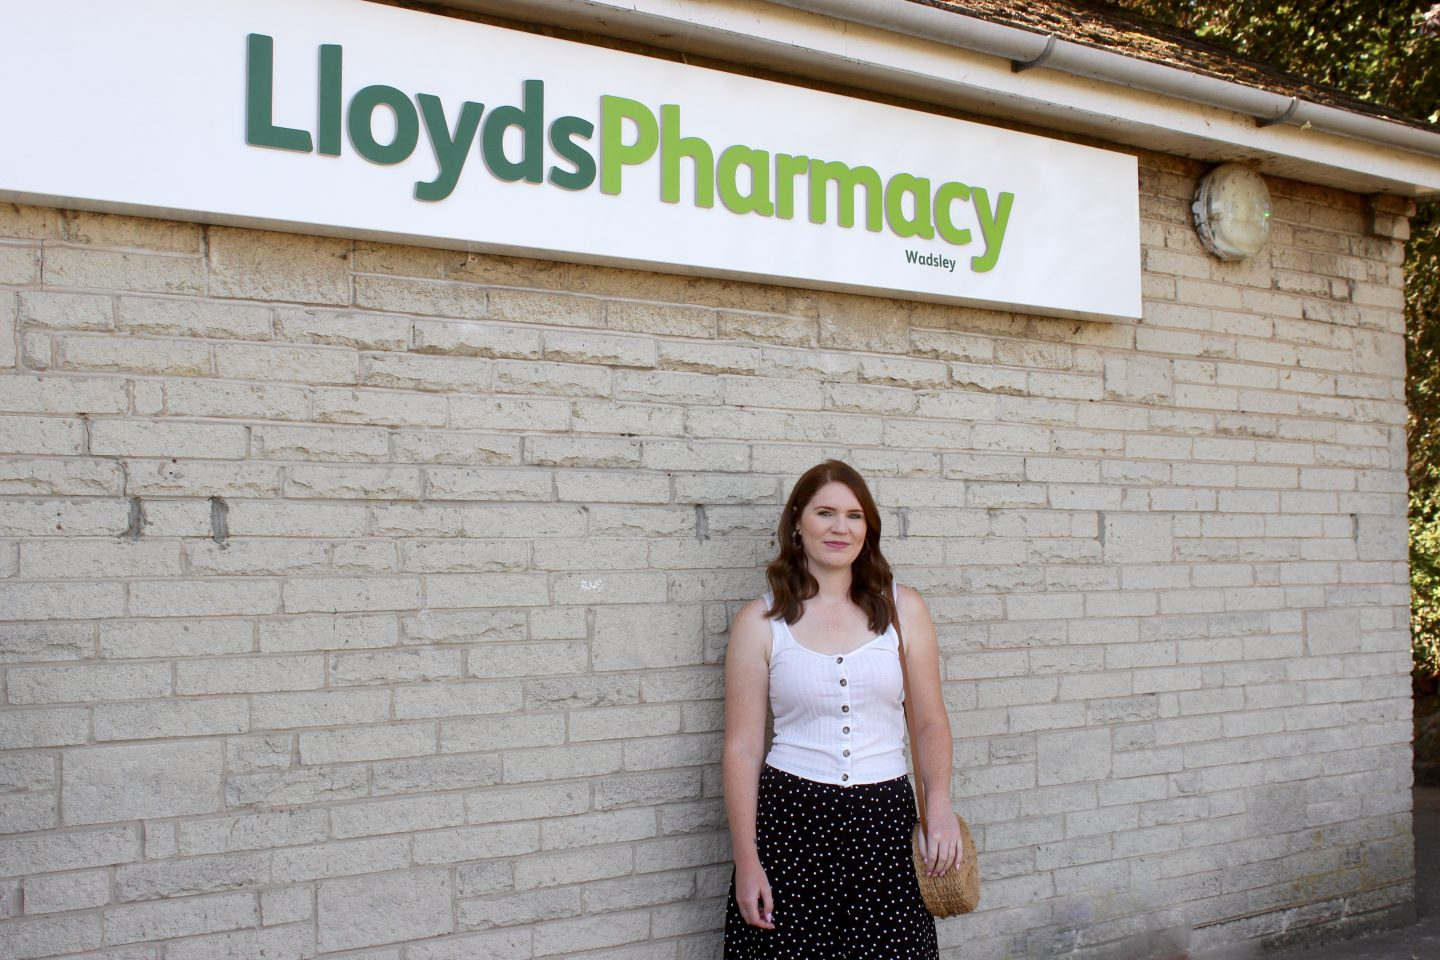 ARE YOU AT RISK OF DEVELOPING DIABETES? FIND OUT WITH LLOYDSPHARMACY